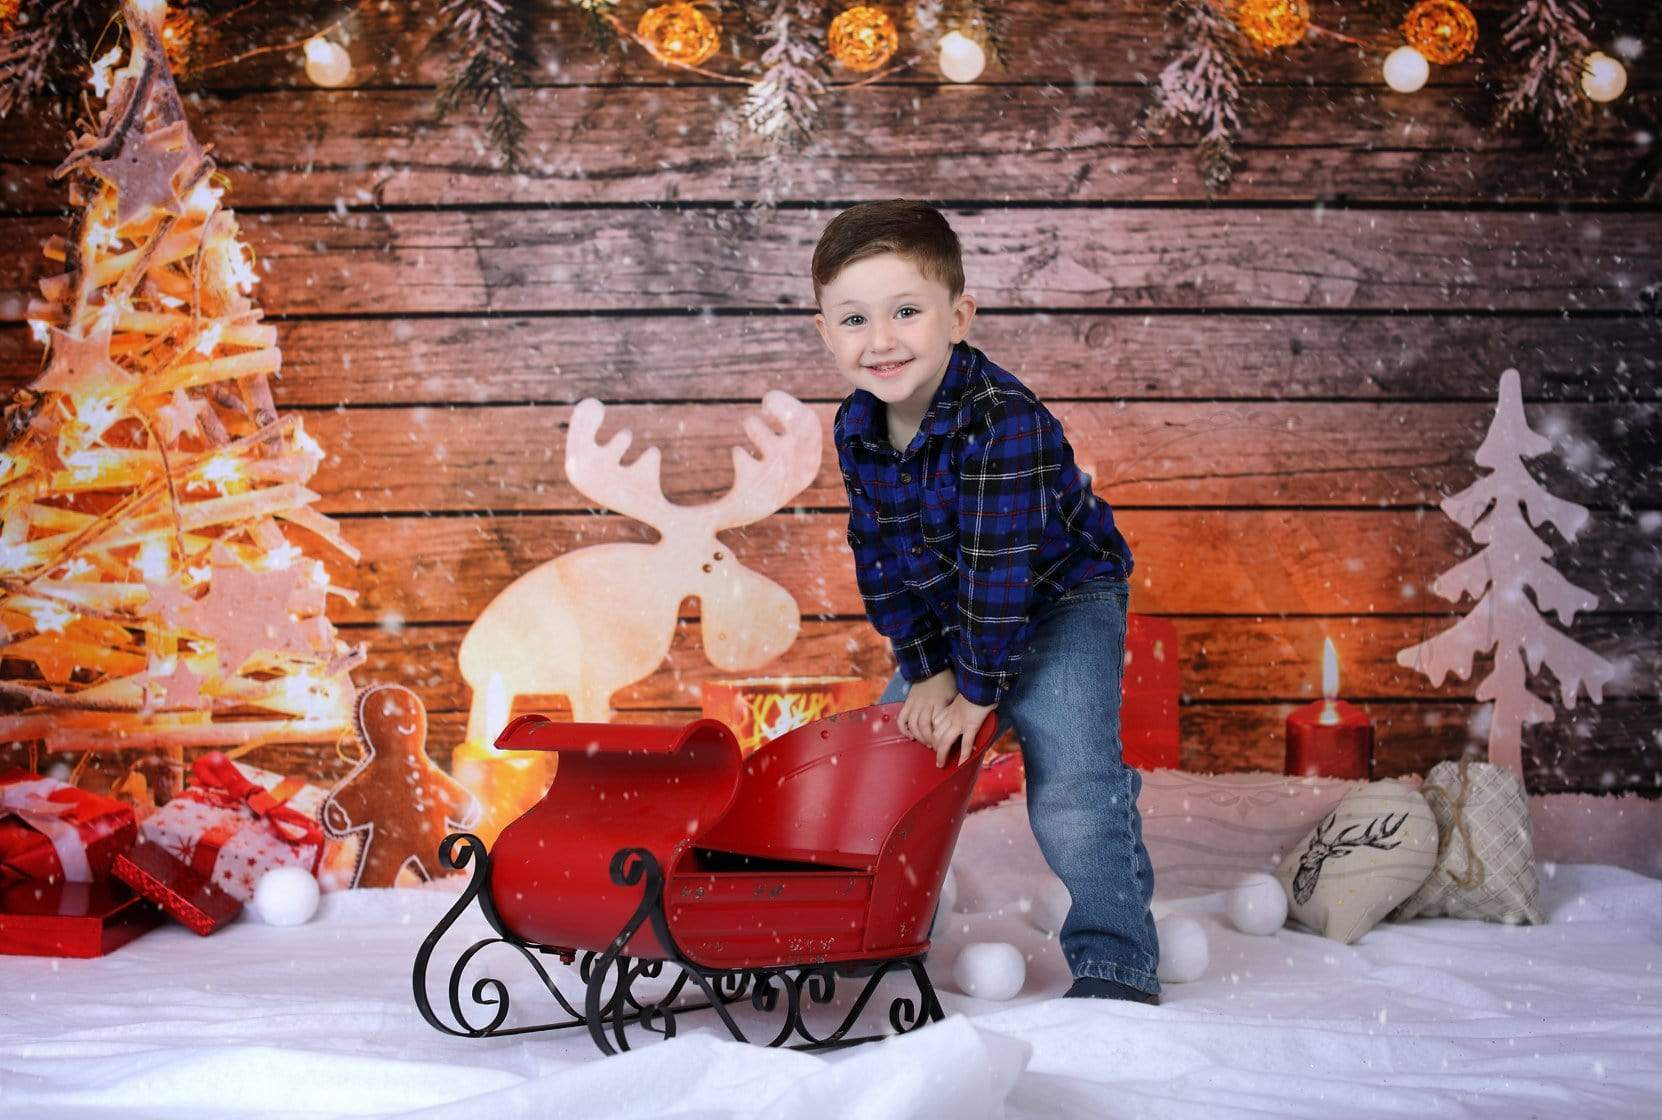 Load image into Gallery viewer, Katebackdrop:Kate Christmas Photo Backdrop Snow Wooden Light Wall